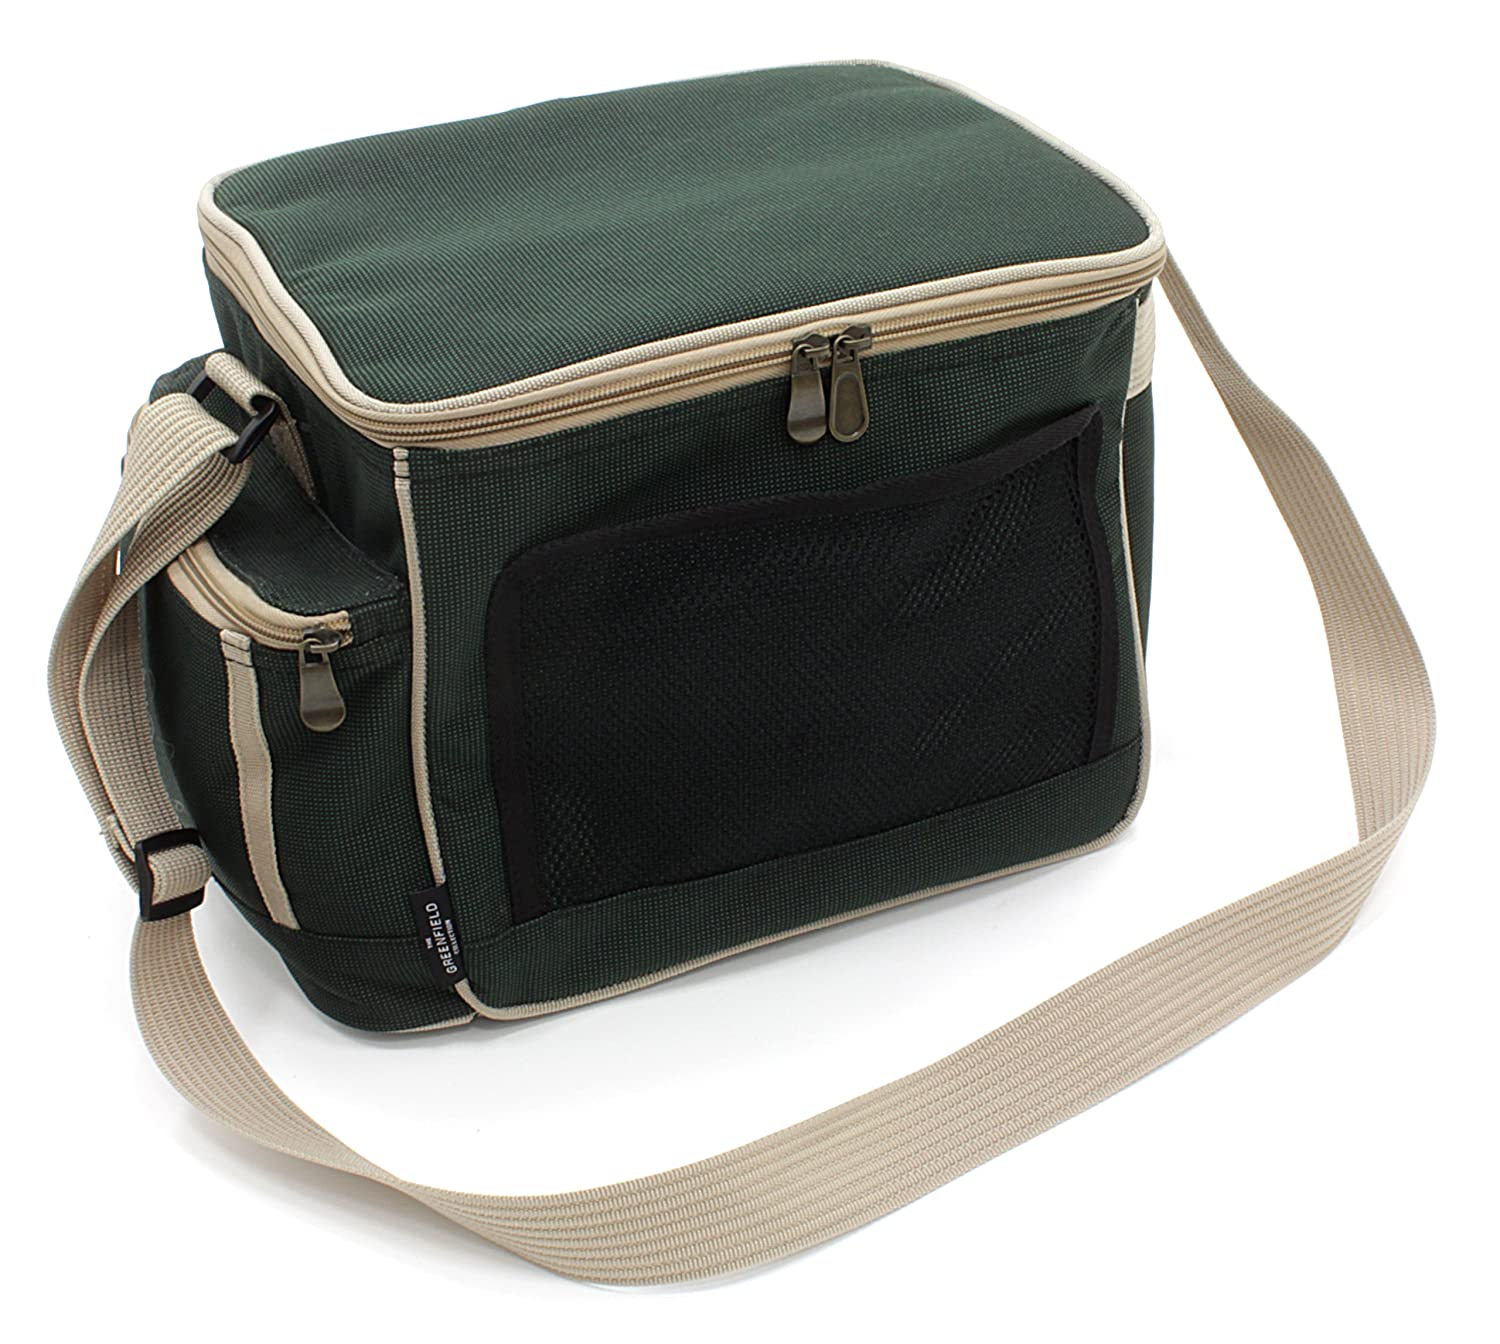 Greenfield Collection 15 Litre Luxury Lightweight Cool Bag - Forest Green Picnicware CB001H